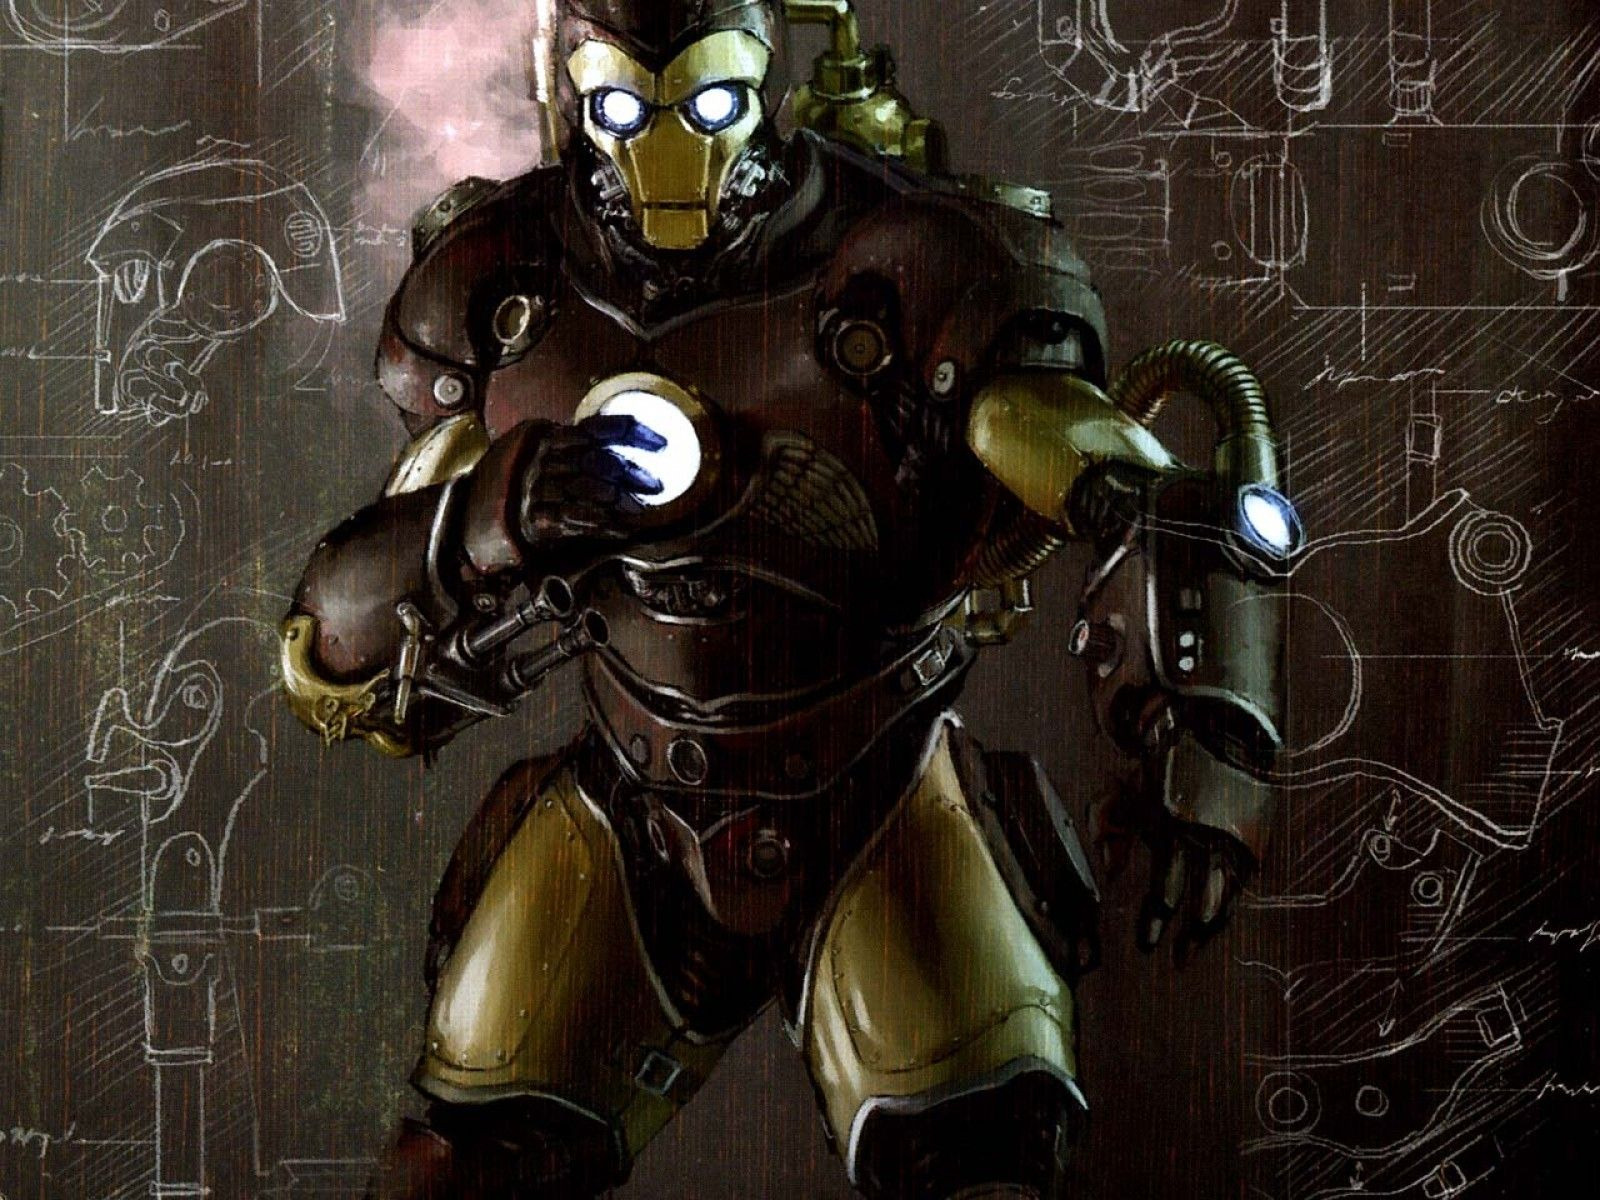 30 cool steampunk wallpapers design trends - Iron Man Steampunk Wallpapers Uk Backgrounds For All Your Devices